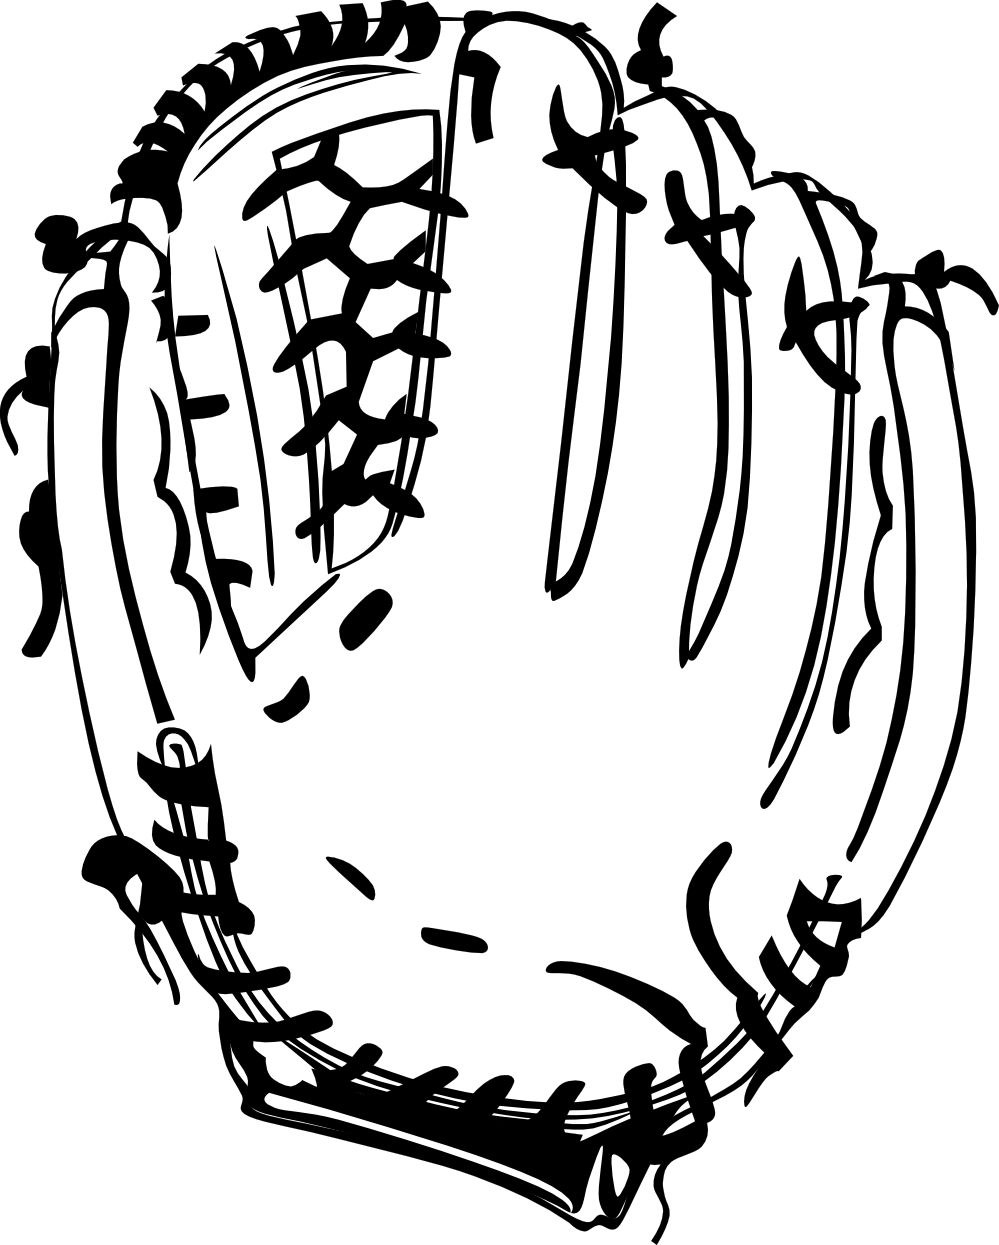 Glove black and white. Baseball related clipart